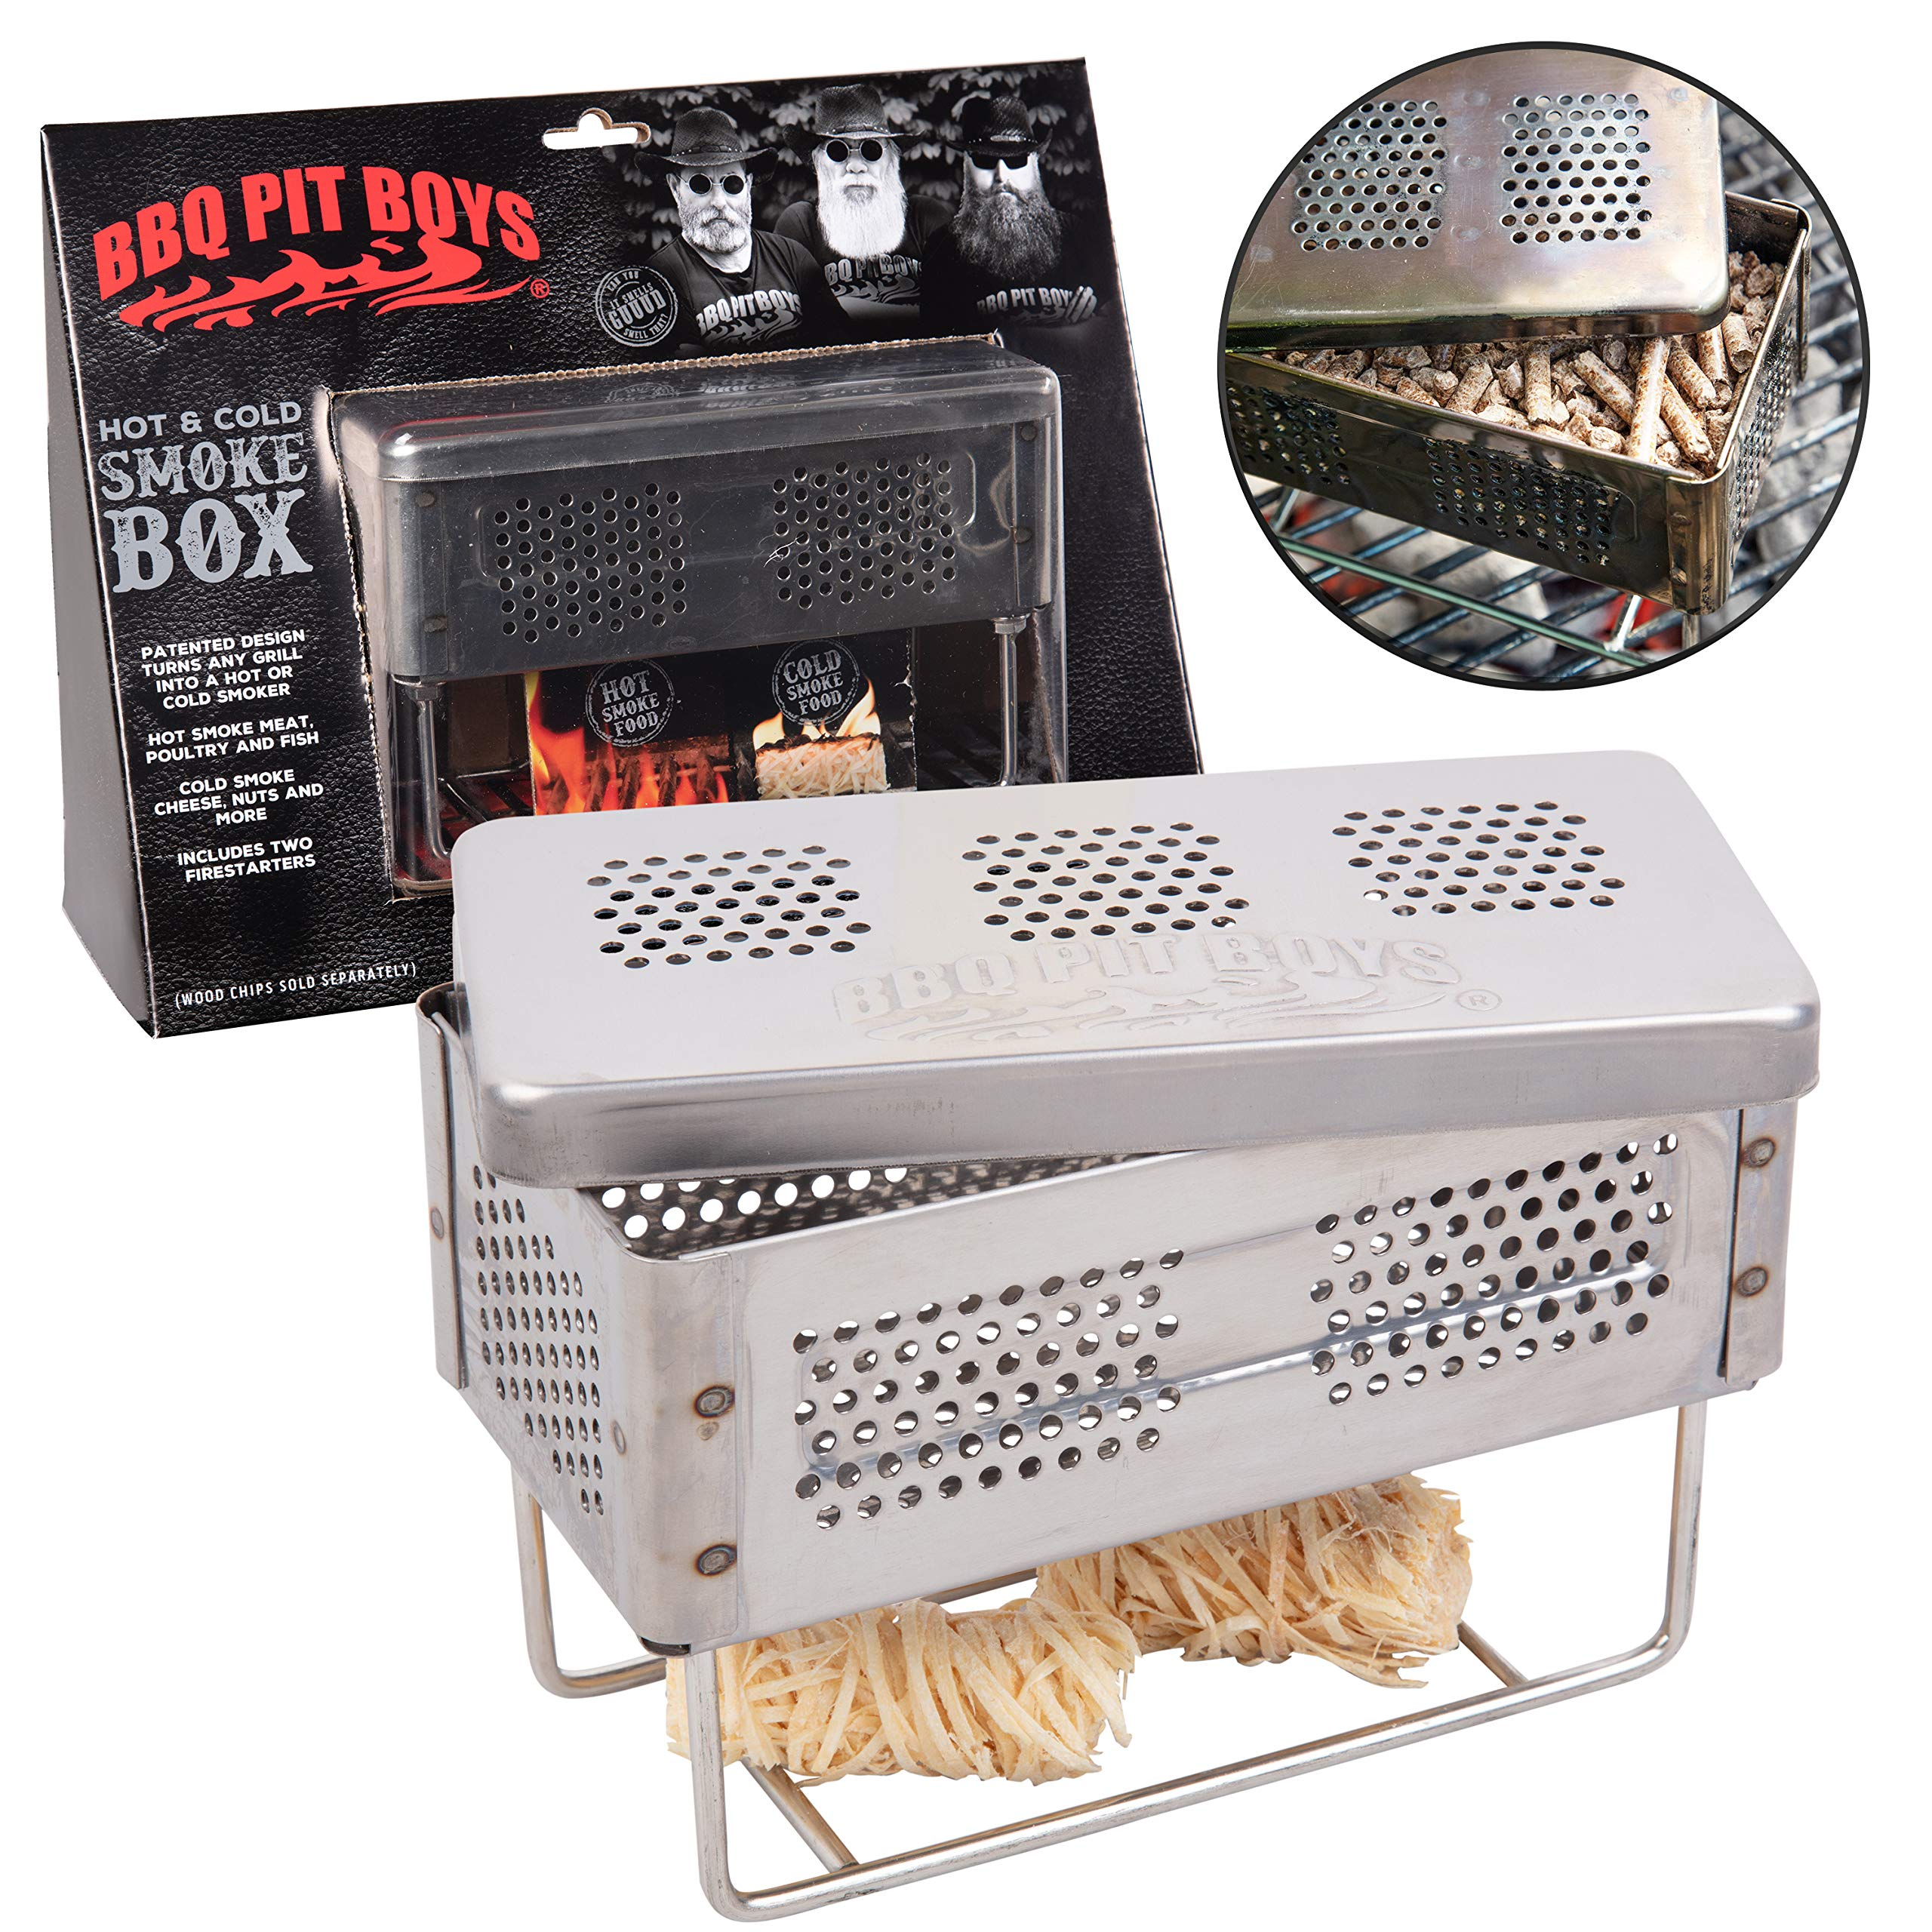 BBQ Pit Boys Smoker Box for Hot and Cold Smoke - Stainless Steel Barbecue Smoke Box Includes 2 Fire Starters - Easily Infuse Smoky Flavor with Your Grill On or Off by BBQ Pit Boys